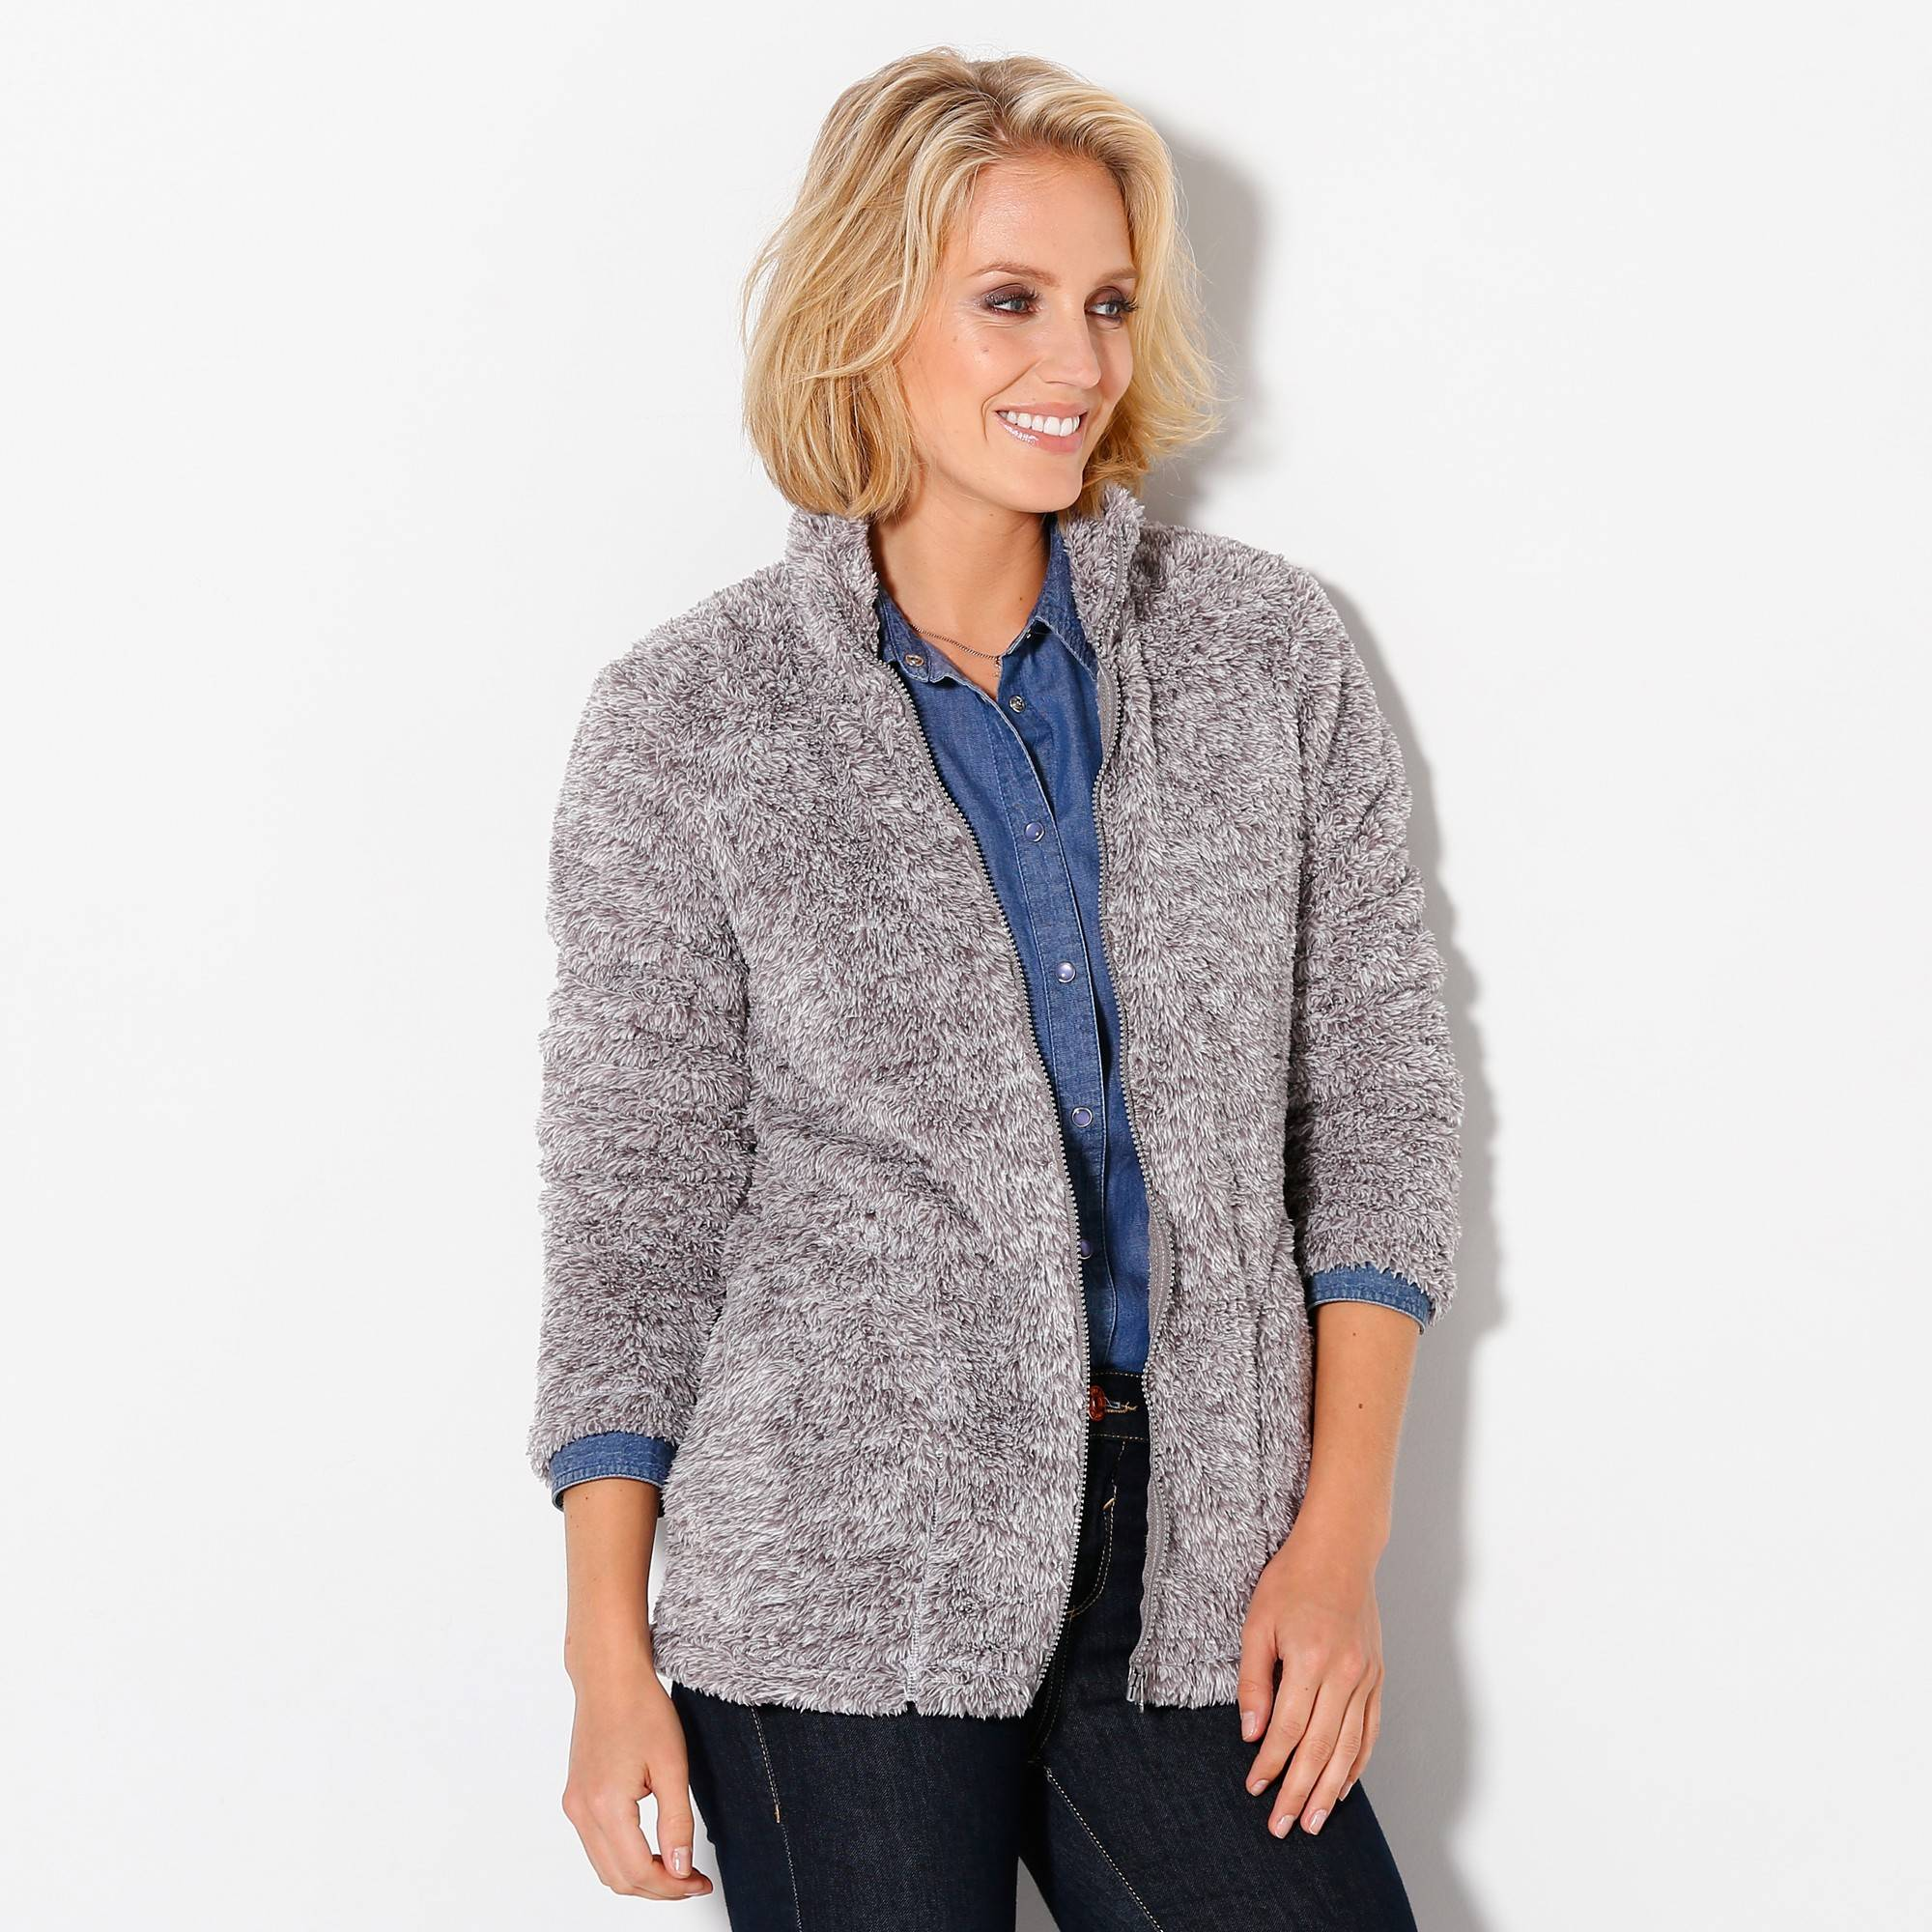 Casual Collection Veste maille peluche - Gris - Taille : 34,36 - Blancheporte